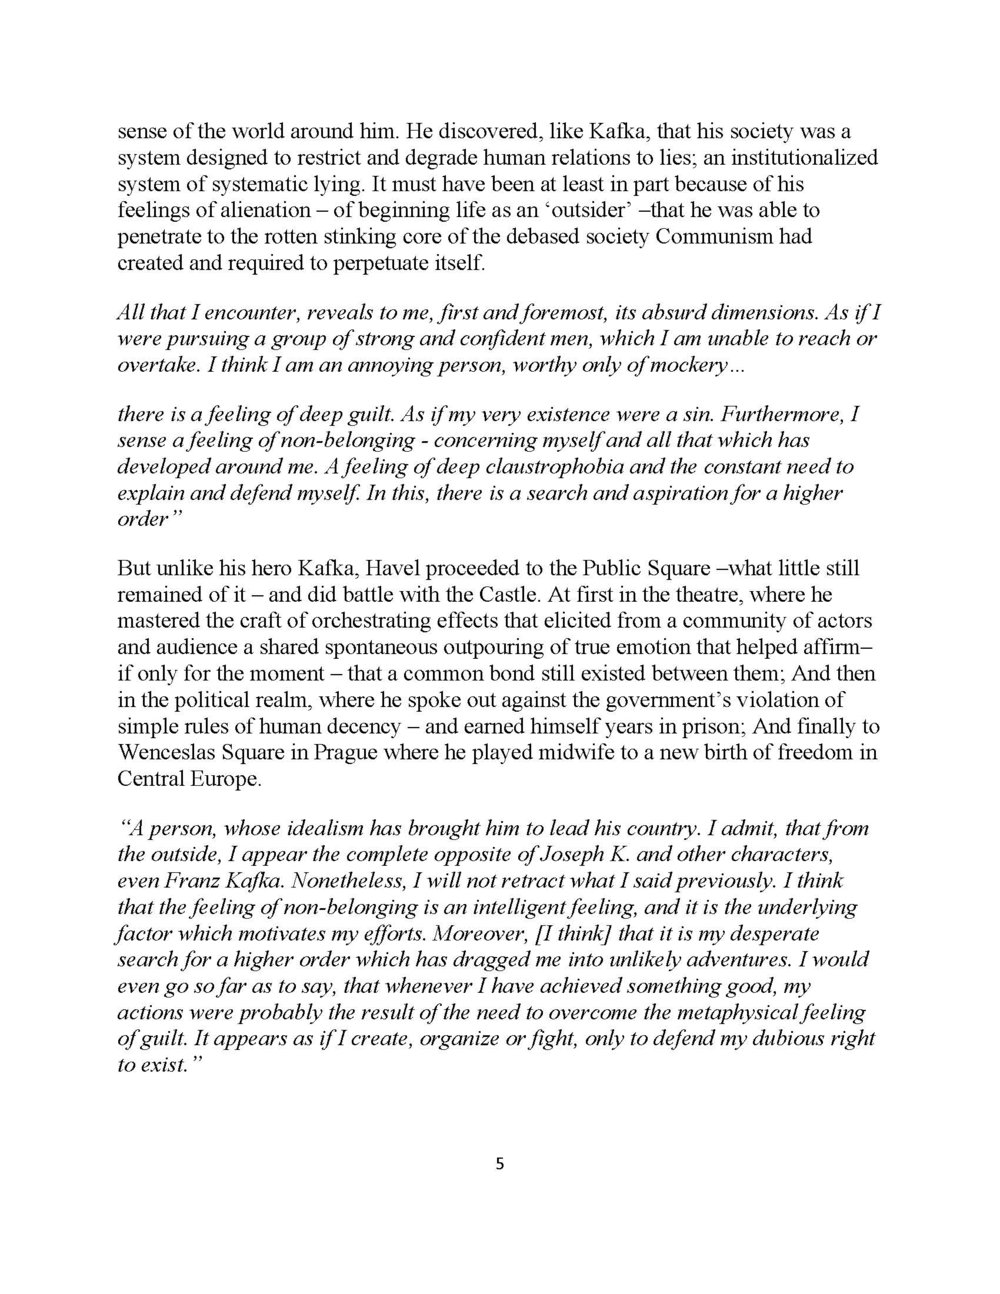 Vaclav Havel -A Reflection_Page_5.jpg